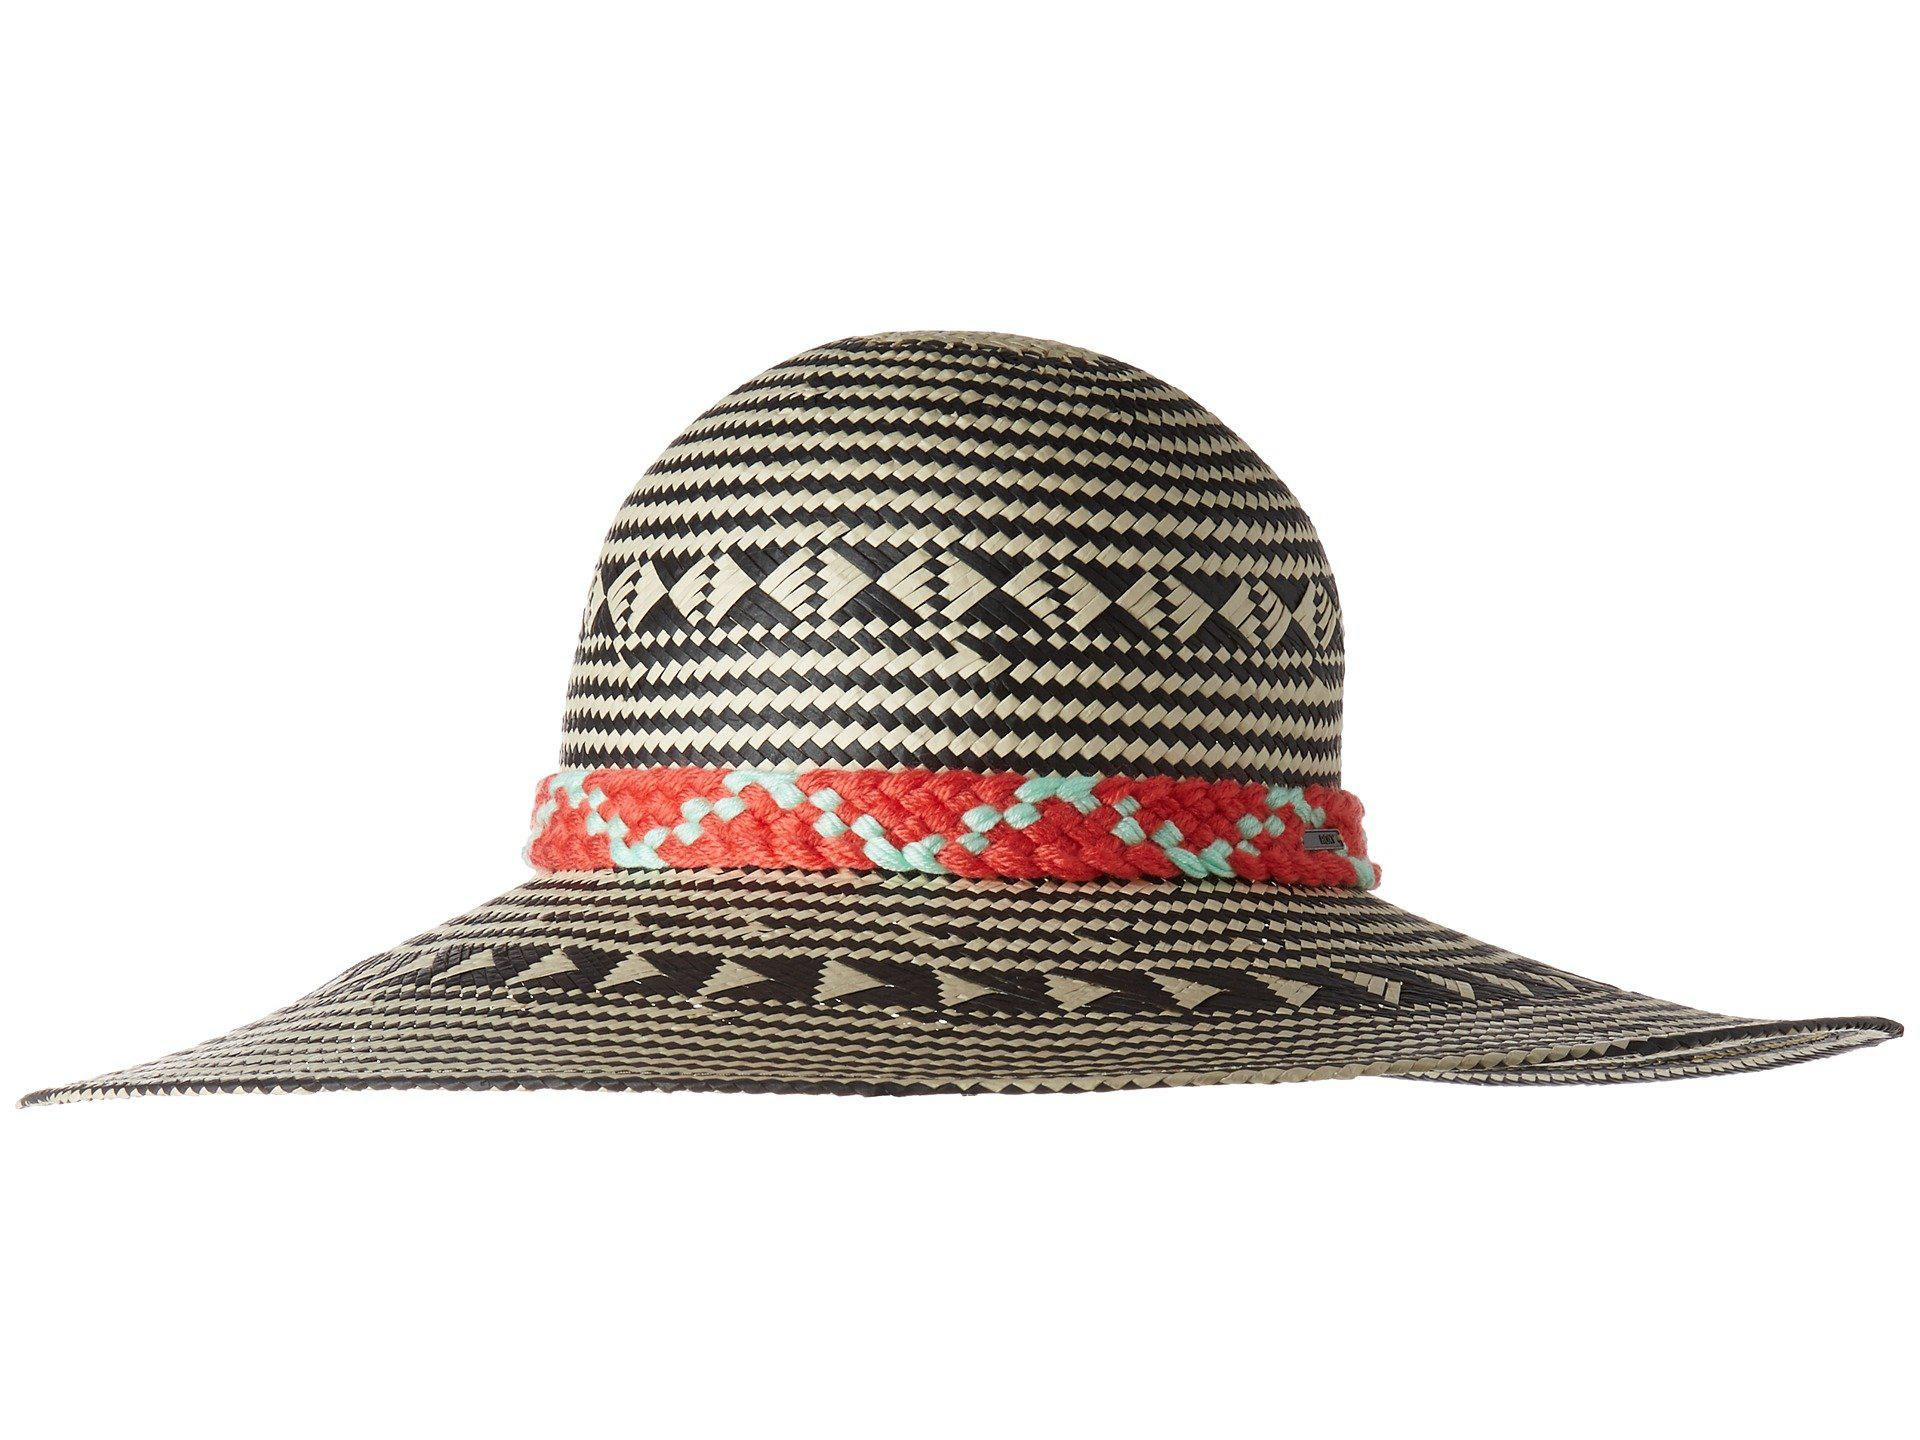 Lyst - Roxy Feel In The Sand Sun Hat (true Black) Traditional Hats ... 5e5feb6af4d0